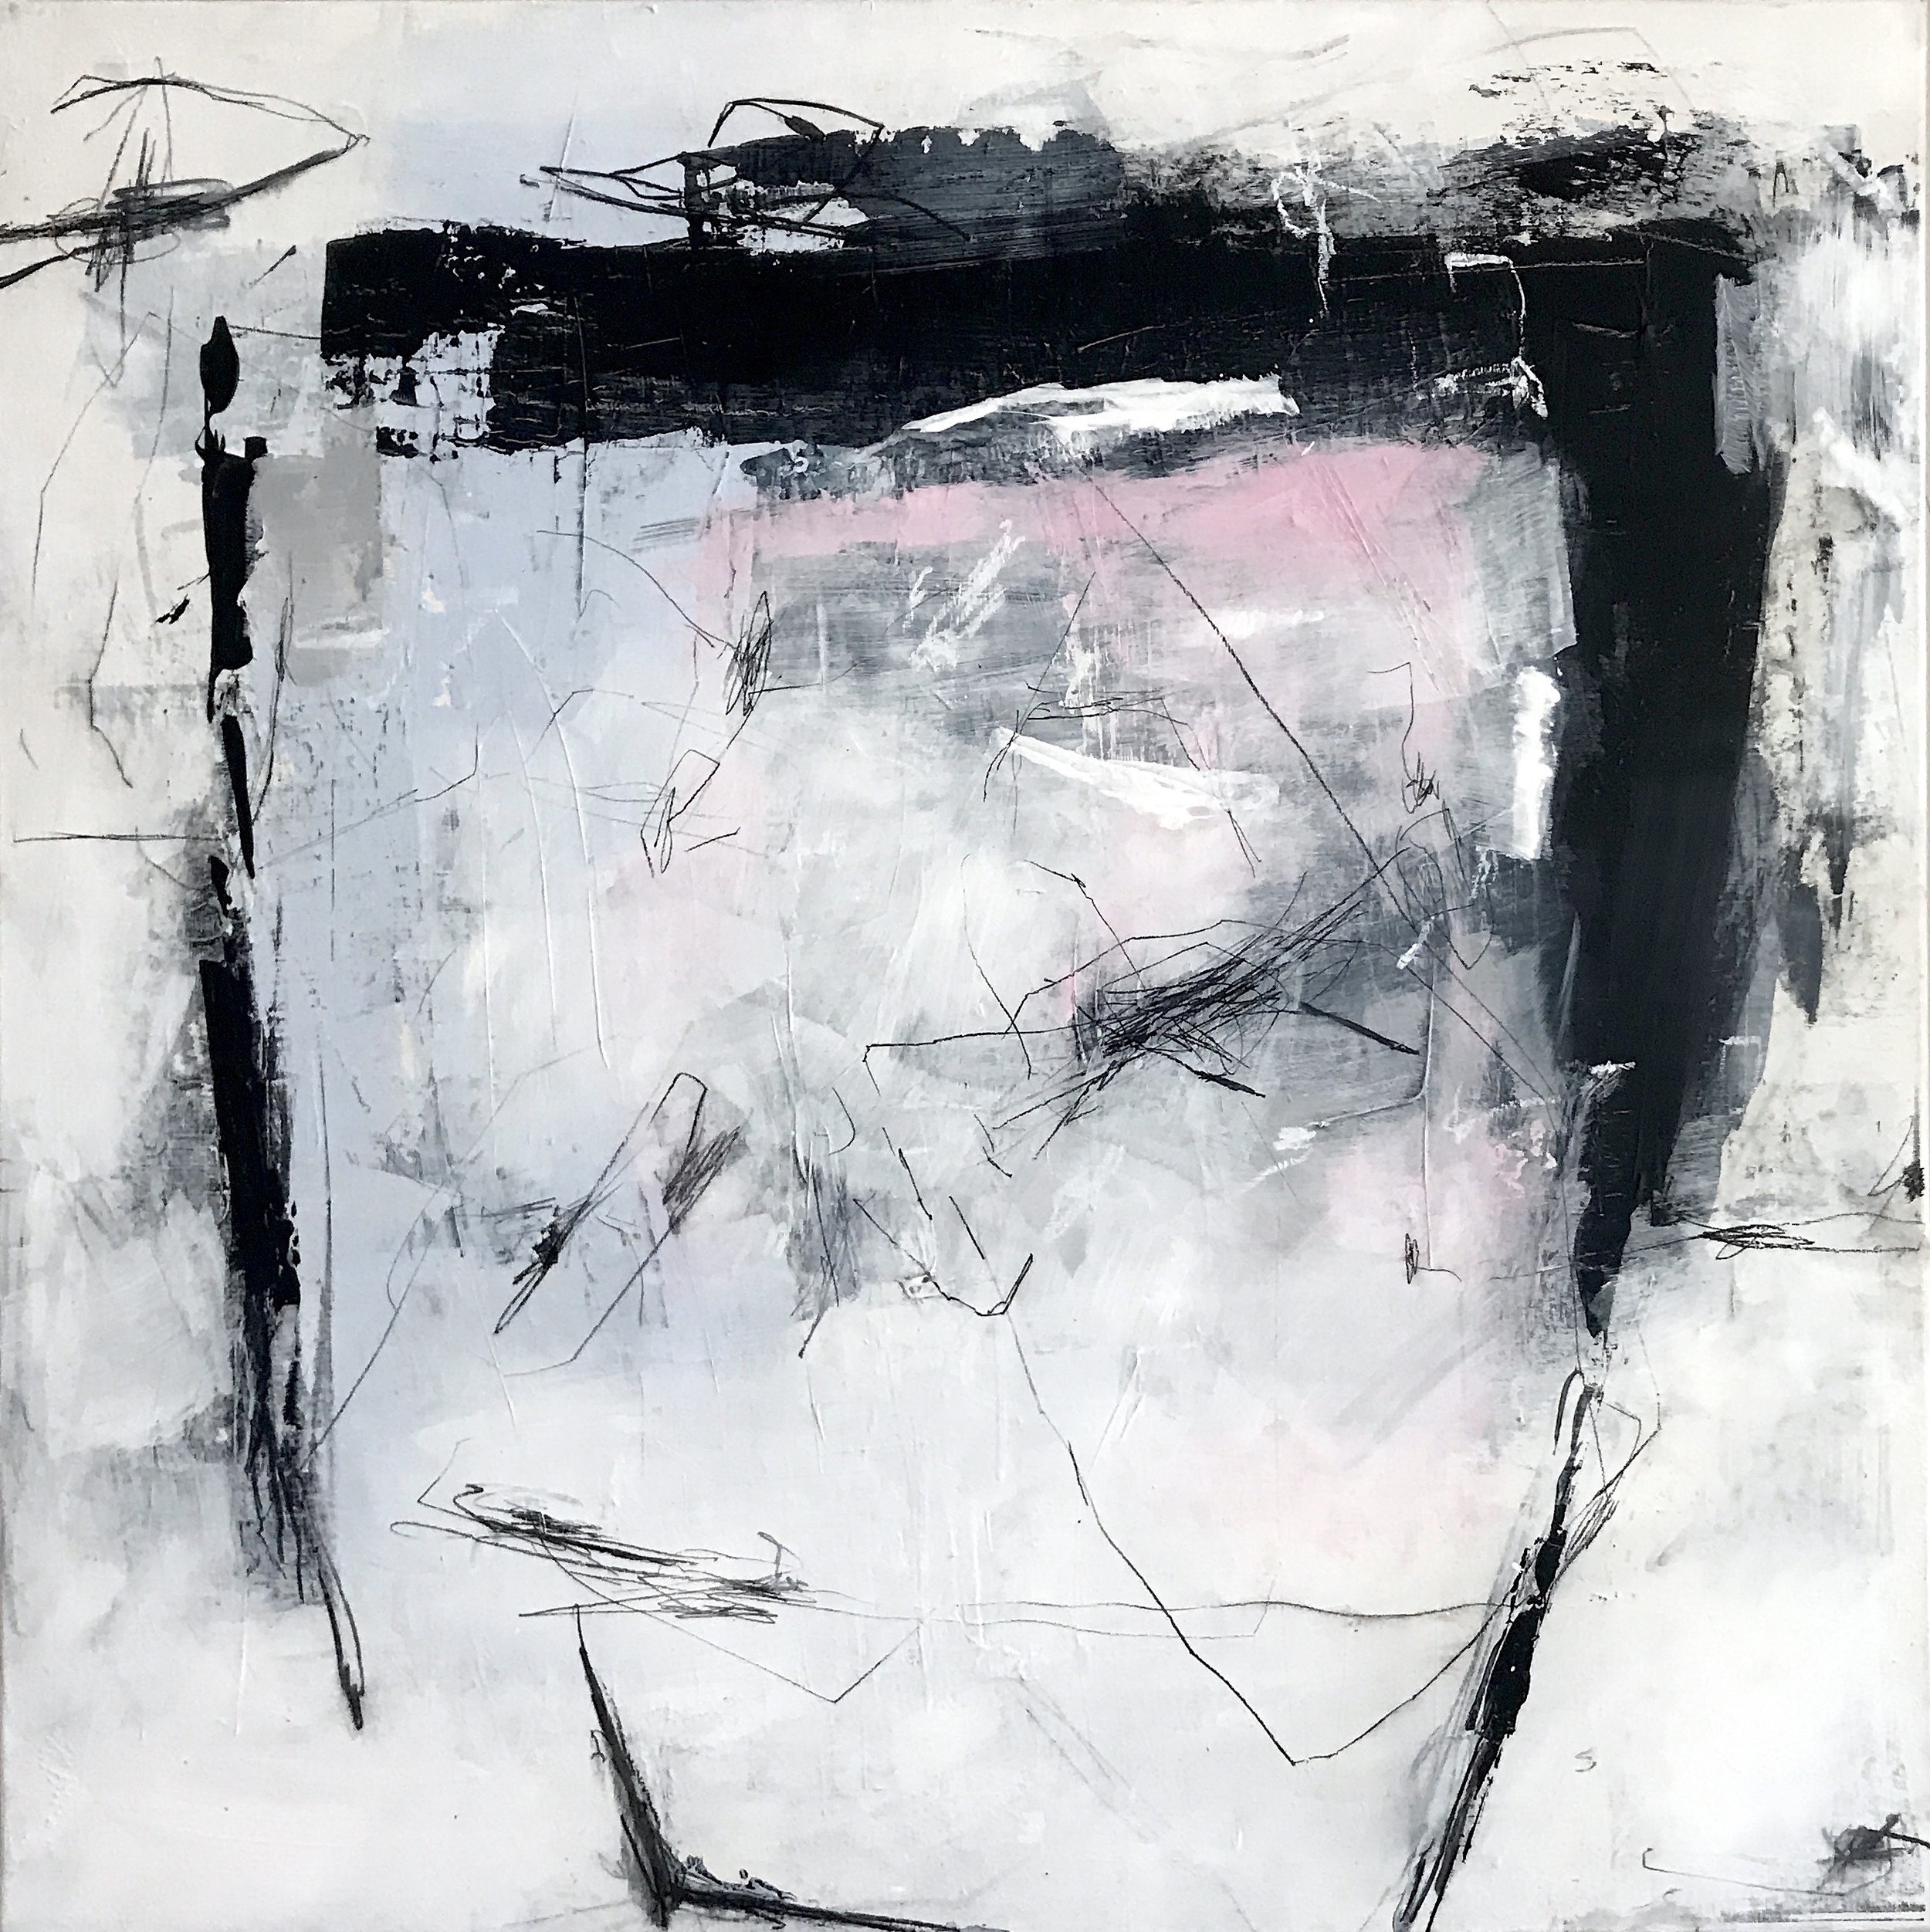 Painting no 3609, acrylic, charcoal, pastels on stretched canvas, 100x100cm, 2018